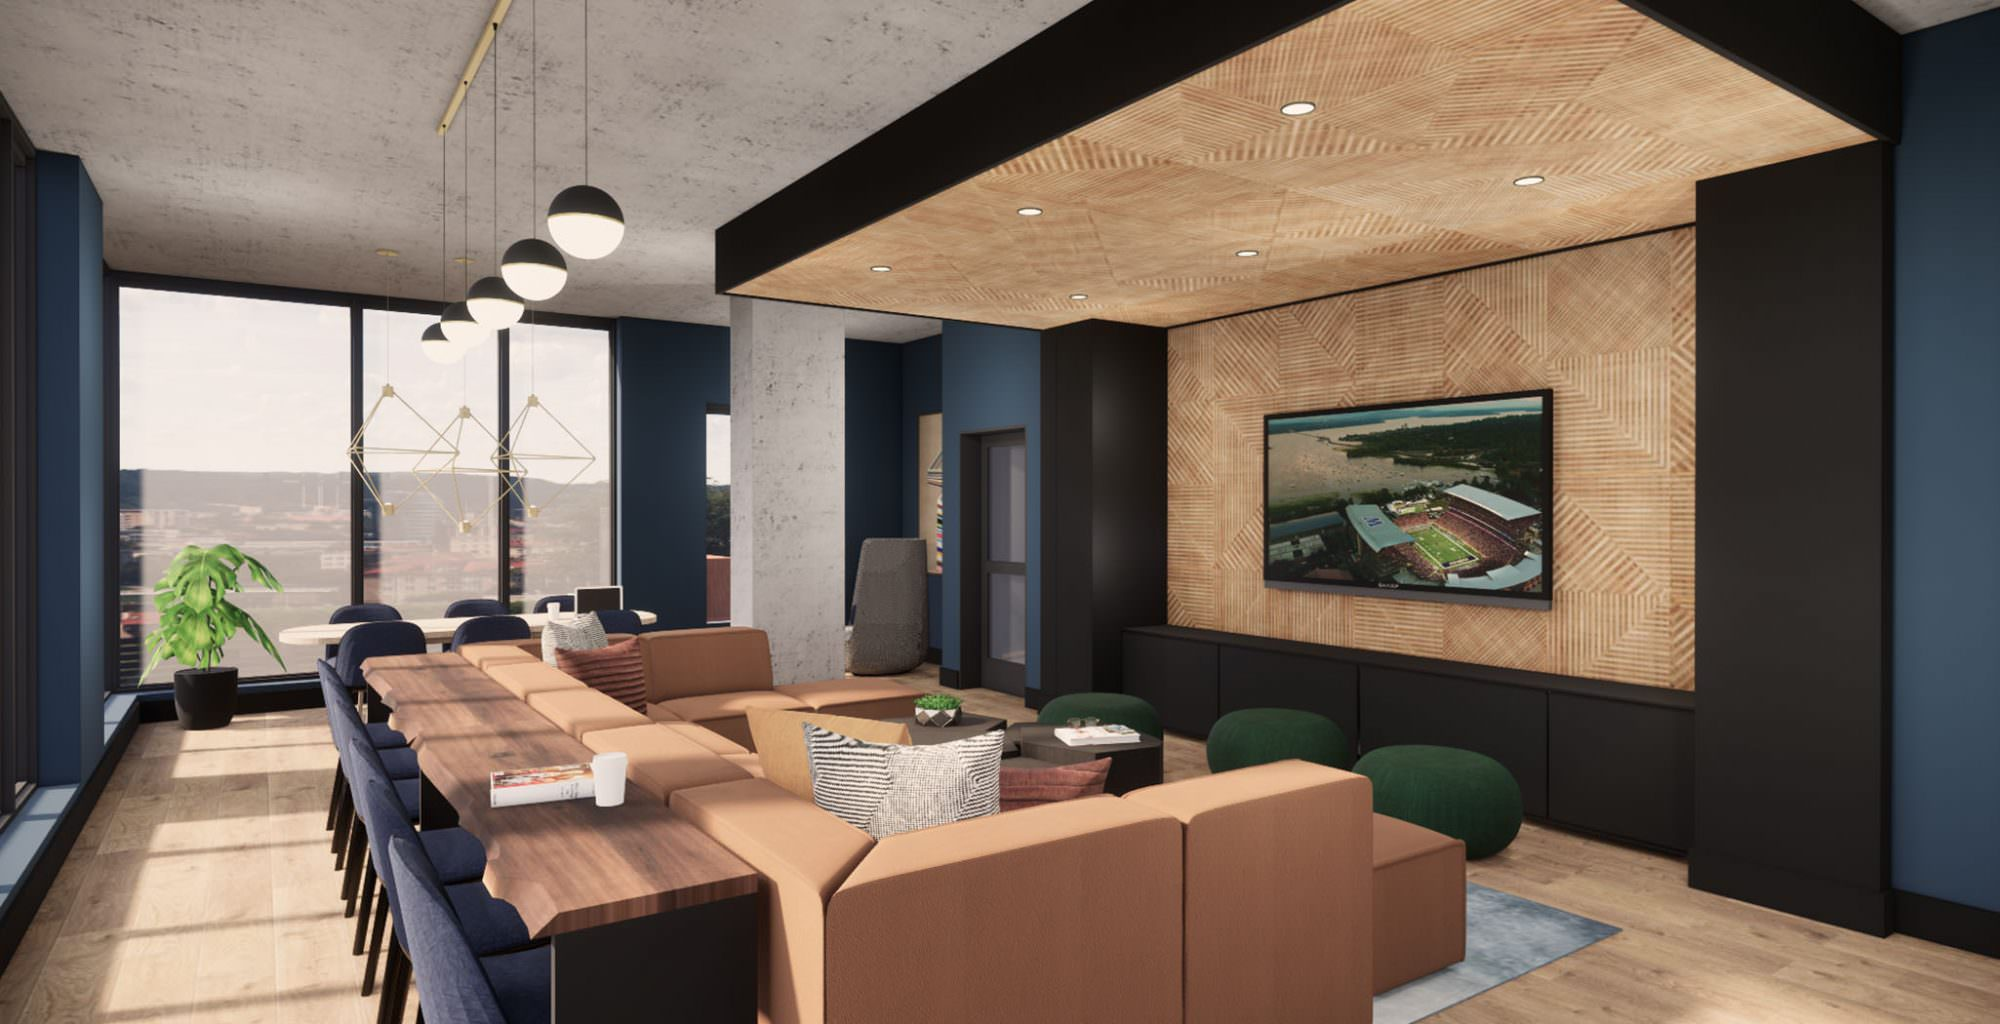 Lakeview Student Housing Interior Design